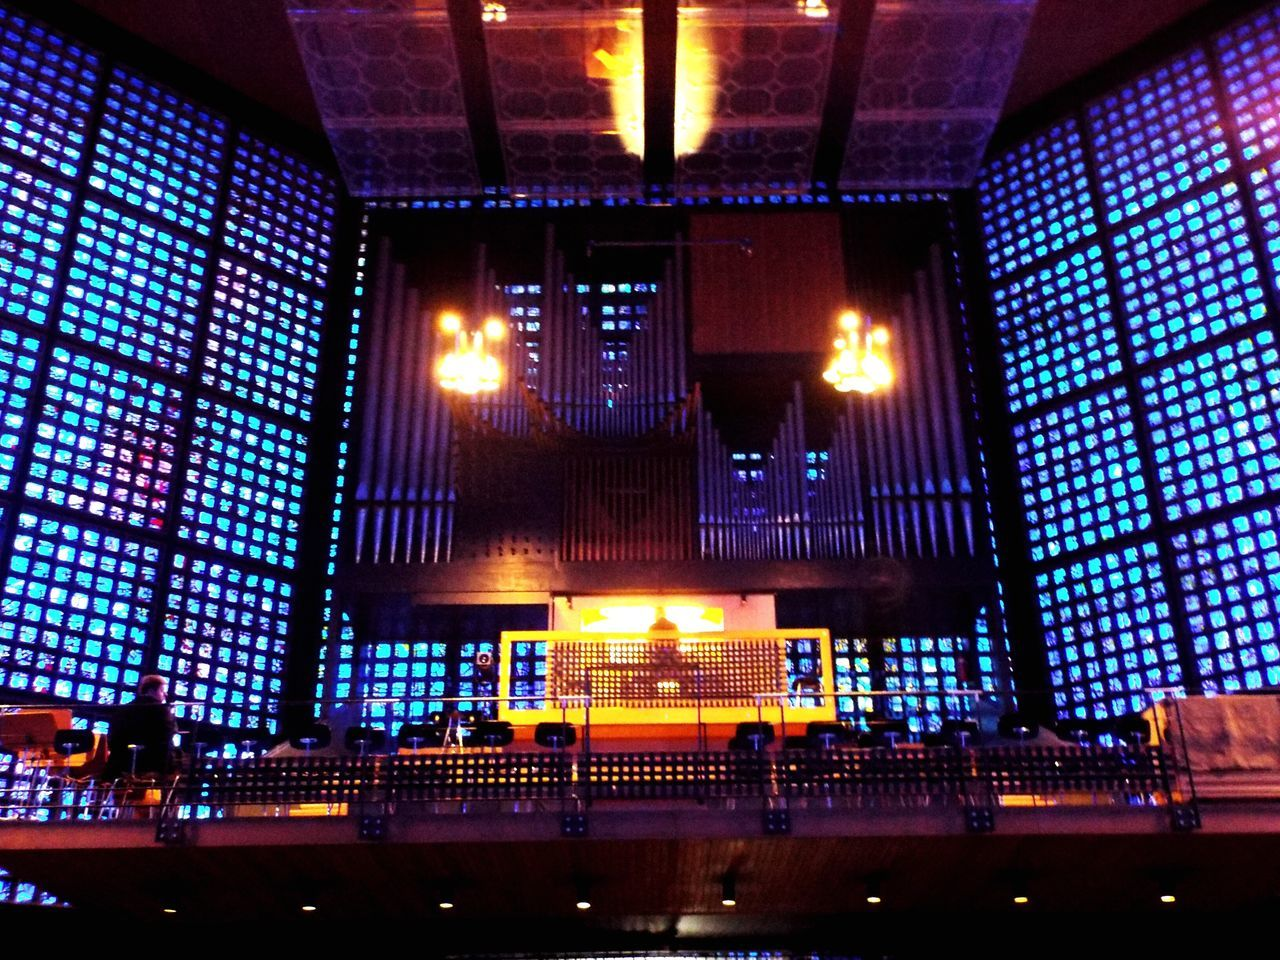 Chruch Illuminated Indoors  Technology Sound Mixer No People Architecture Day